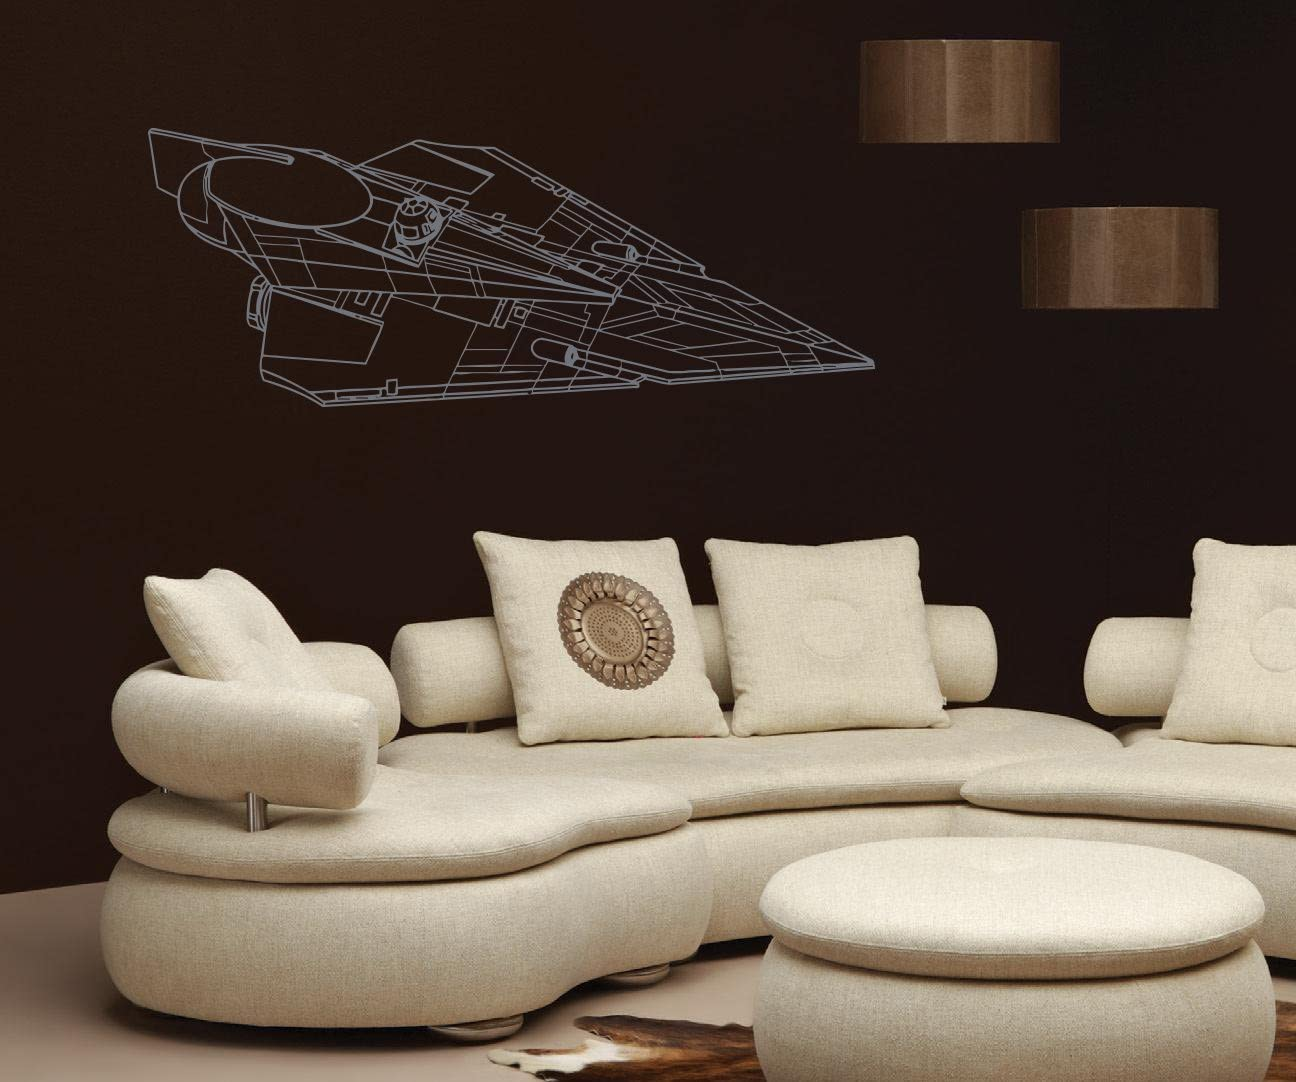 Amazon Com Delta 7 Jedi Starfighter Star Wars Nursery Room Kids Bedroom Wall Sticker Decal Wall Art Decor G7307 2 Home Kitchen